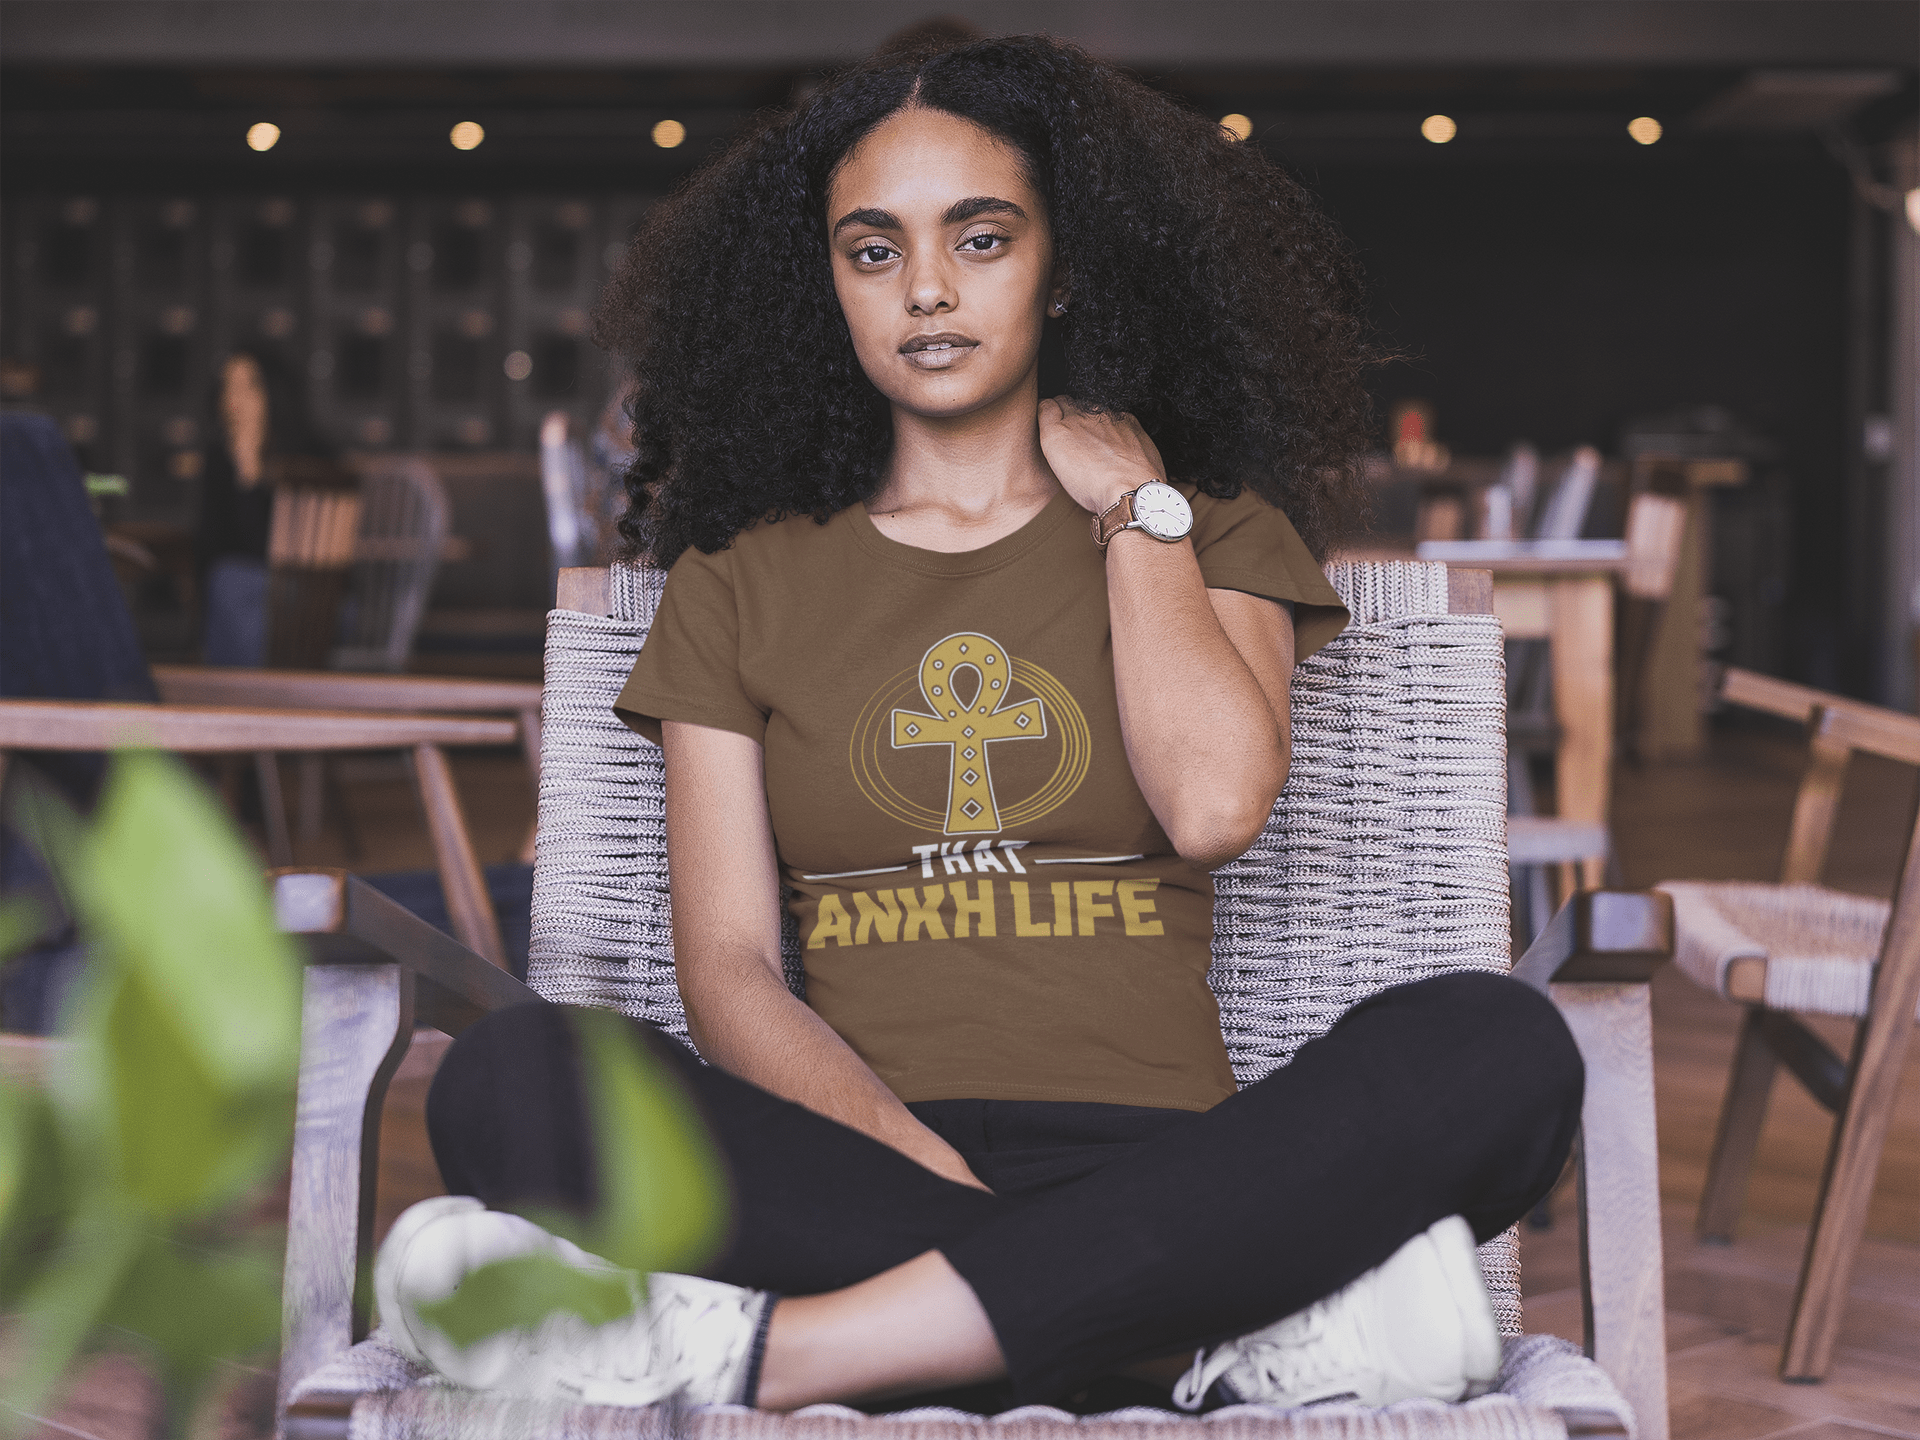 black-woman-wearing-a-tshirt-mockup-sitting-on-a-wooden-chair-a20417